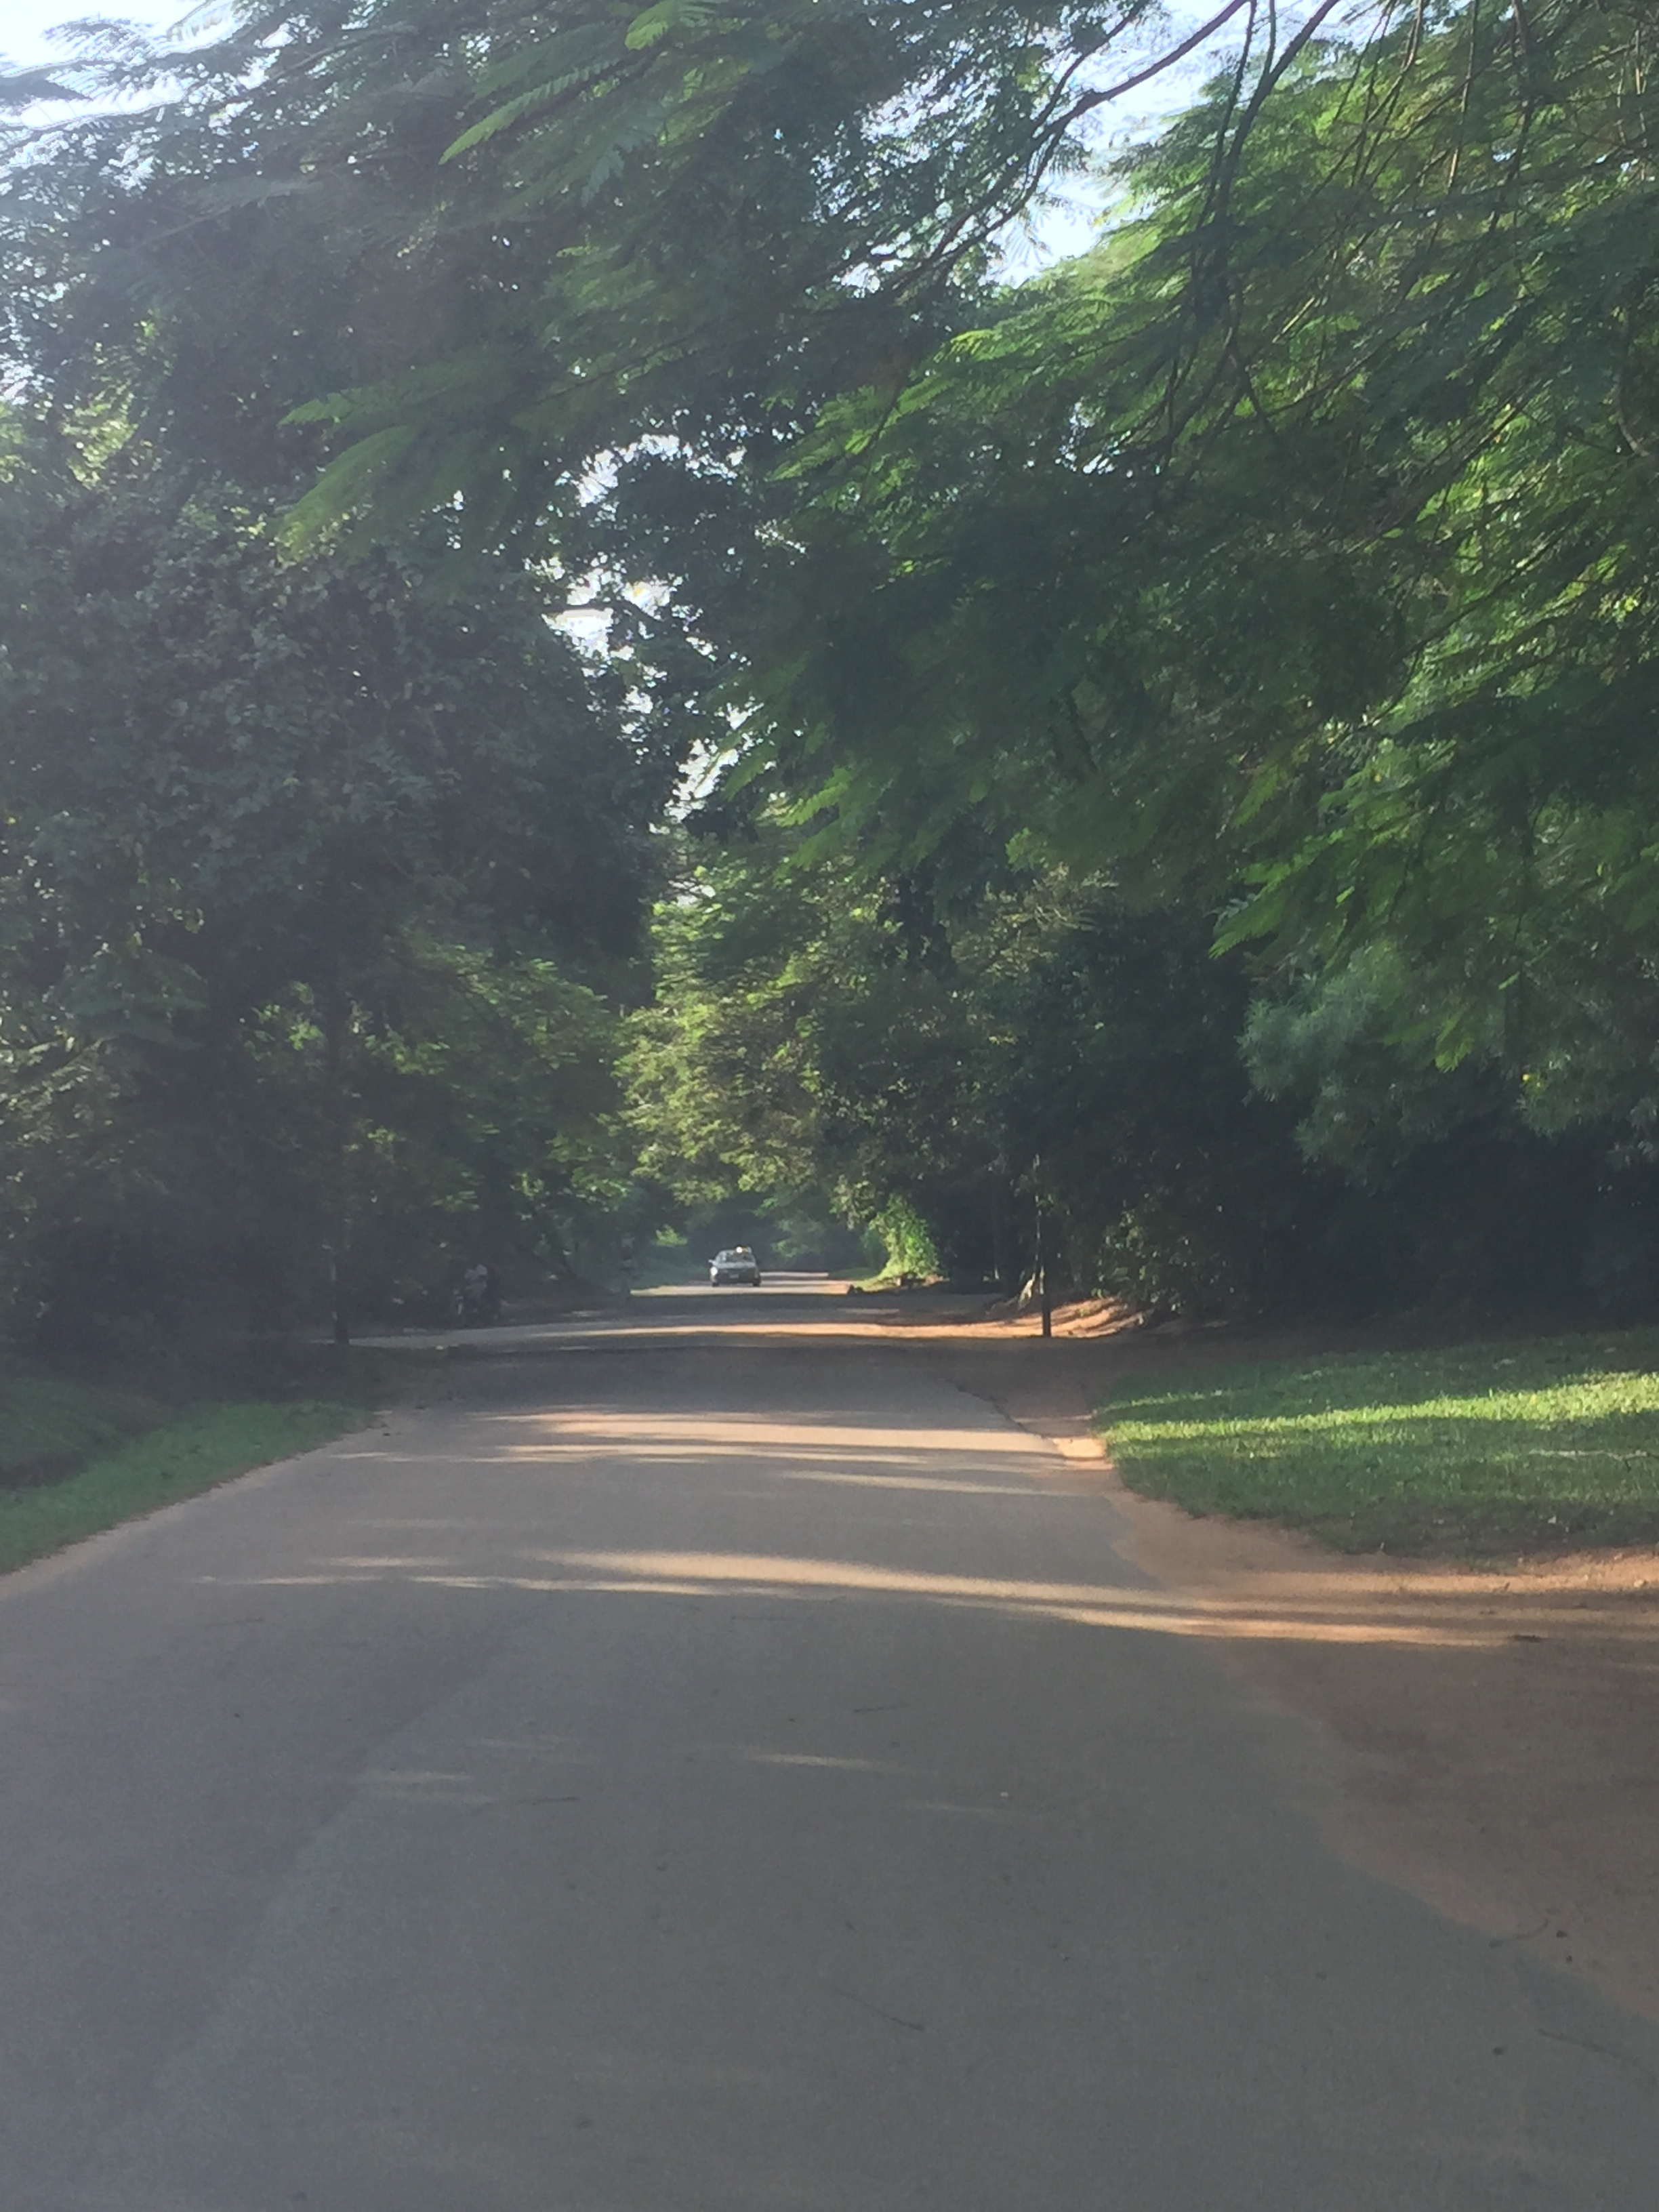 Amina Way. (I used to walk here at night to clear my head and watch roaming squirrels).